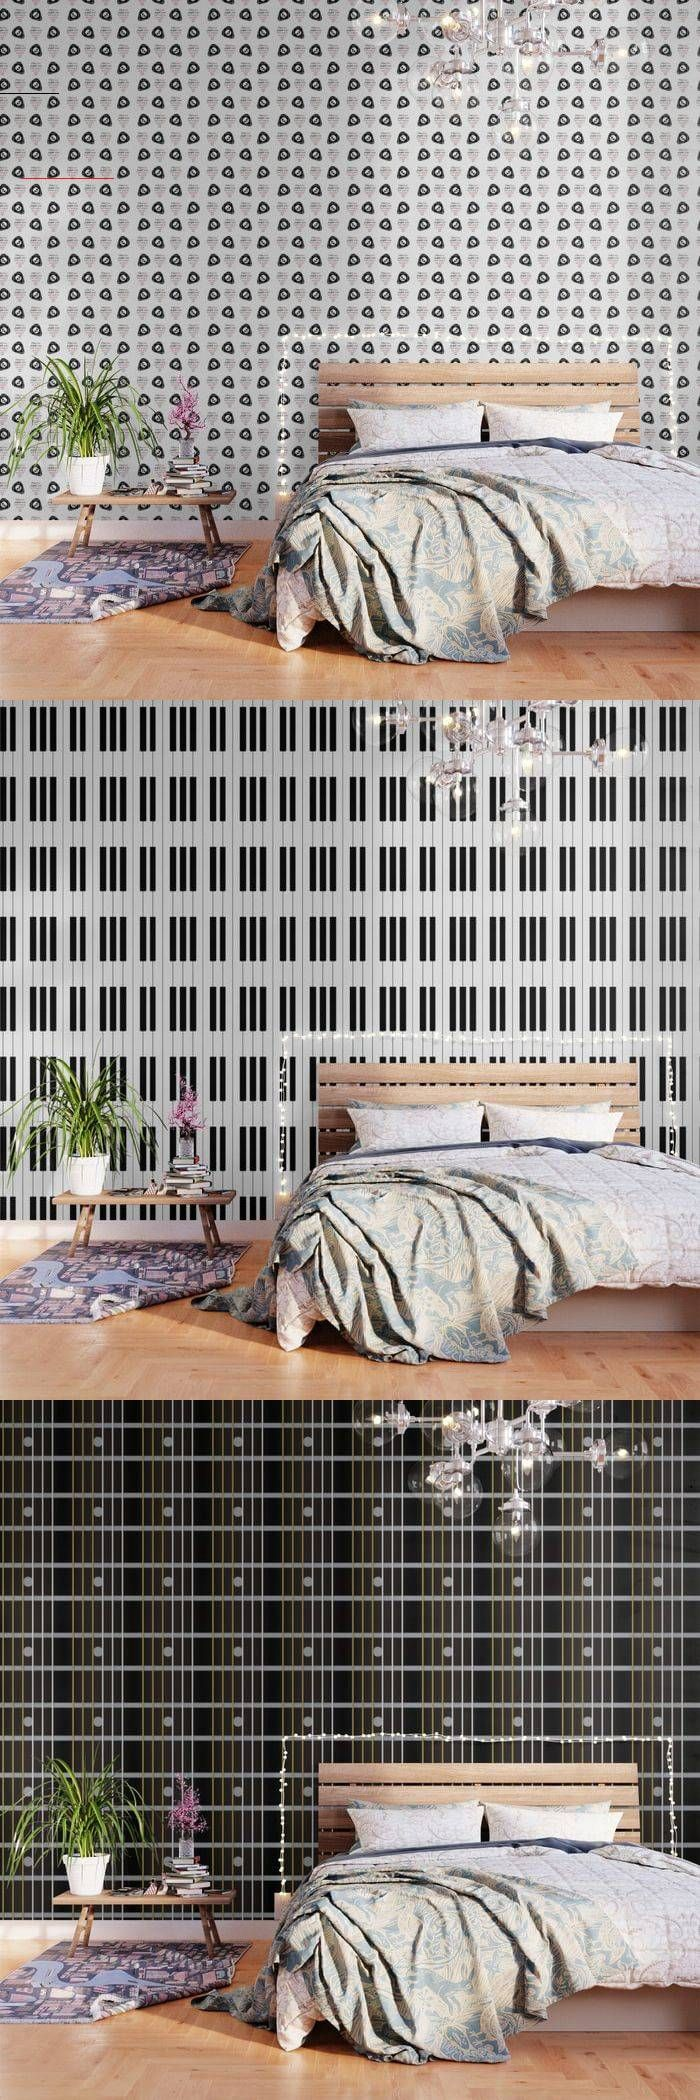 Our Peel And Stick Wallpaper Is Easy To Apply And Take Off Leaving No Adhesive Residue Ideal For Acce Trendy Wallpaper Pattern Striped Walls Trendy Wallpaper